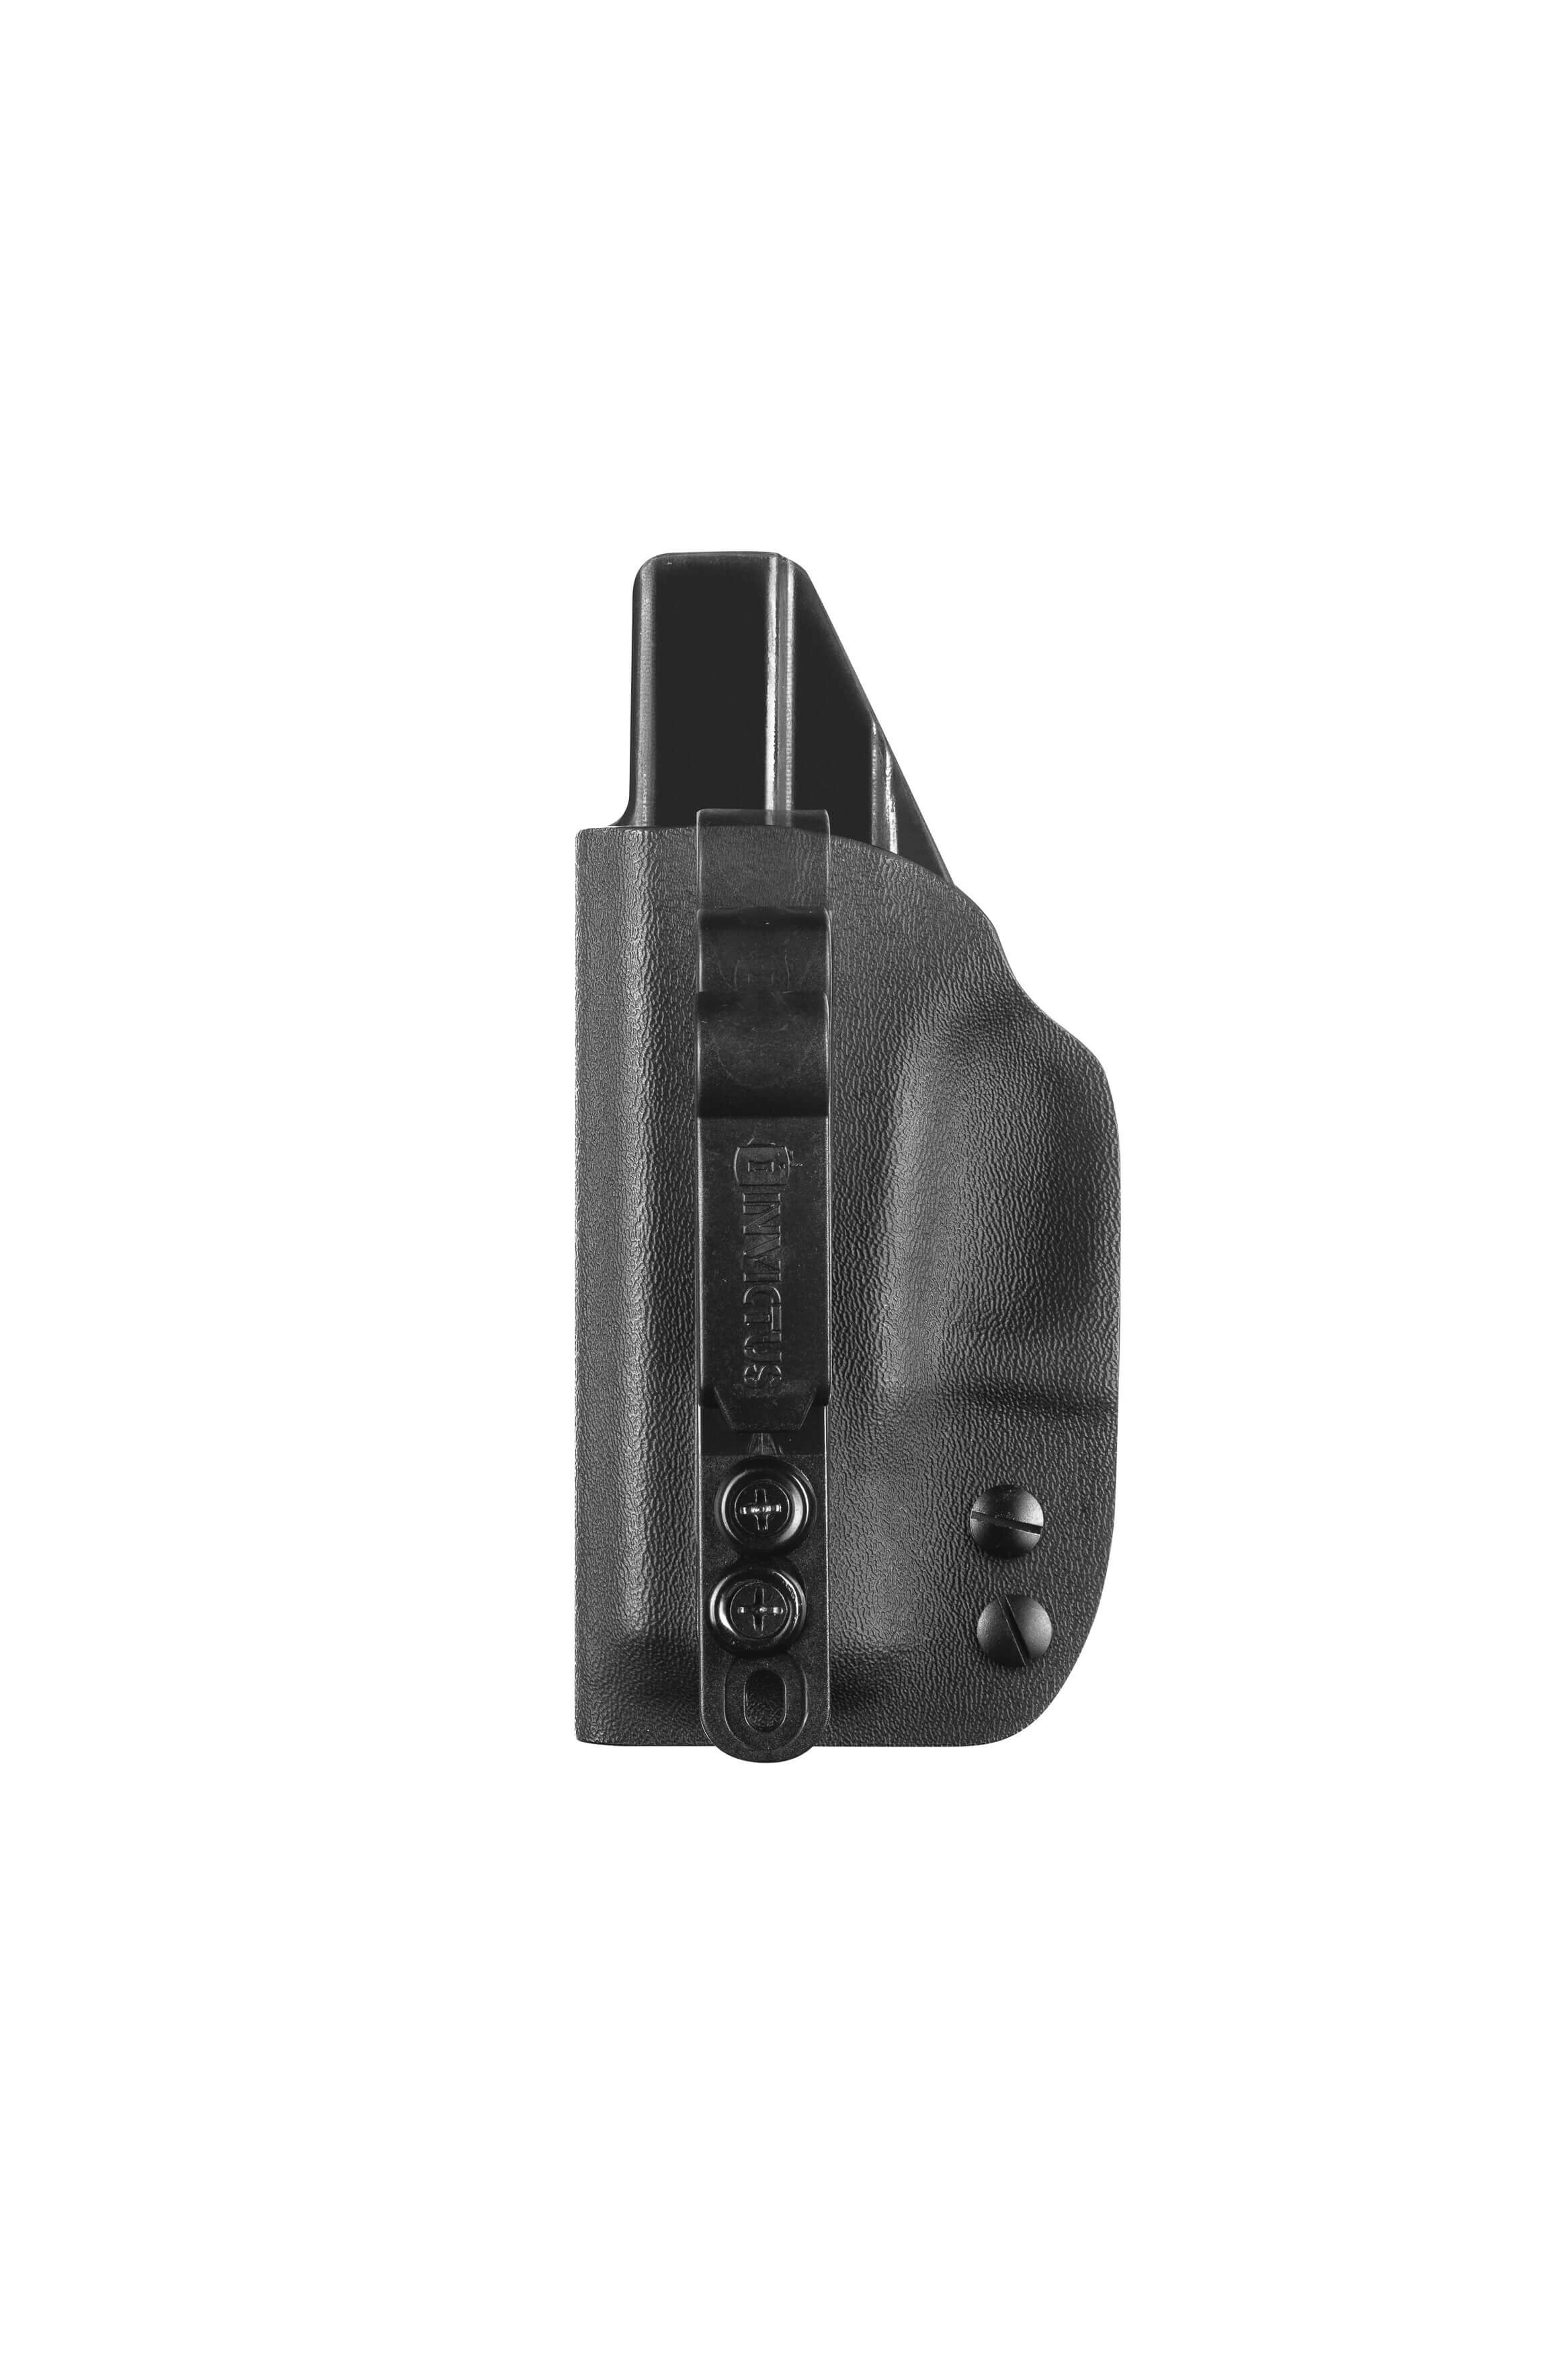 Coldre Glock Kydex Iwb Canhoto Subcompact